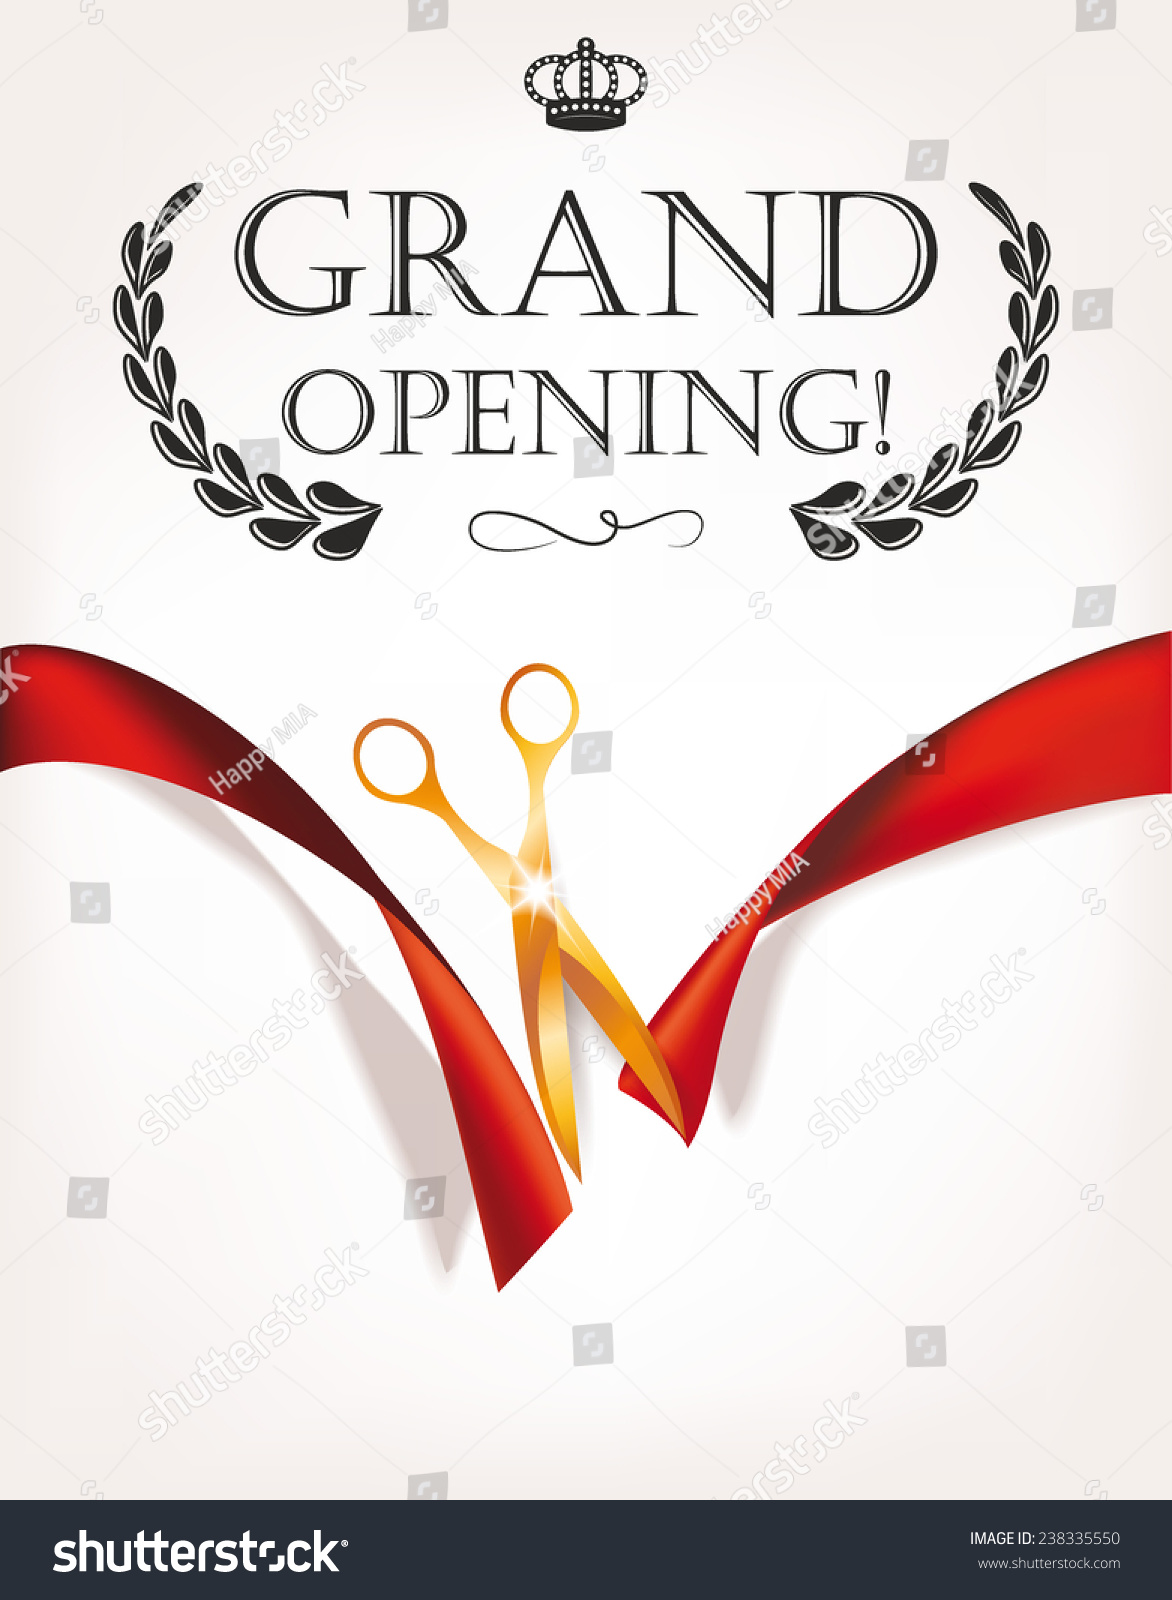 Grand opening invitation card gold scissors imagem vetorial de banco grand opening invitation card with gold scissors stopboris Gallery